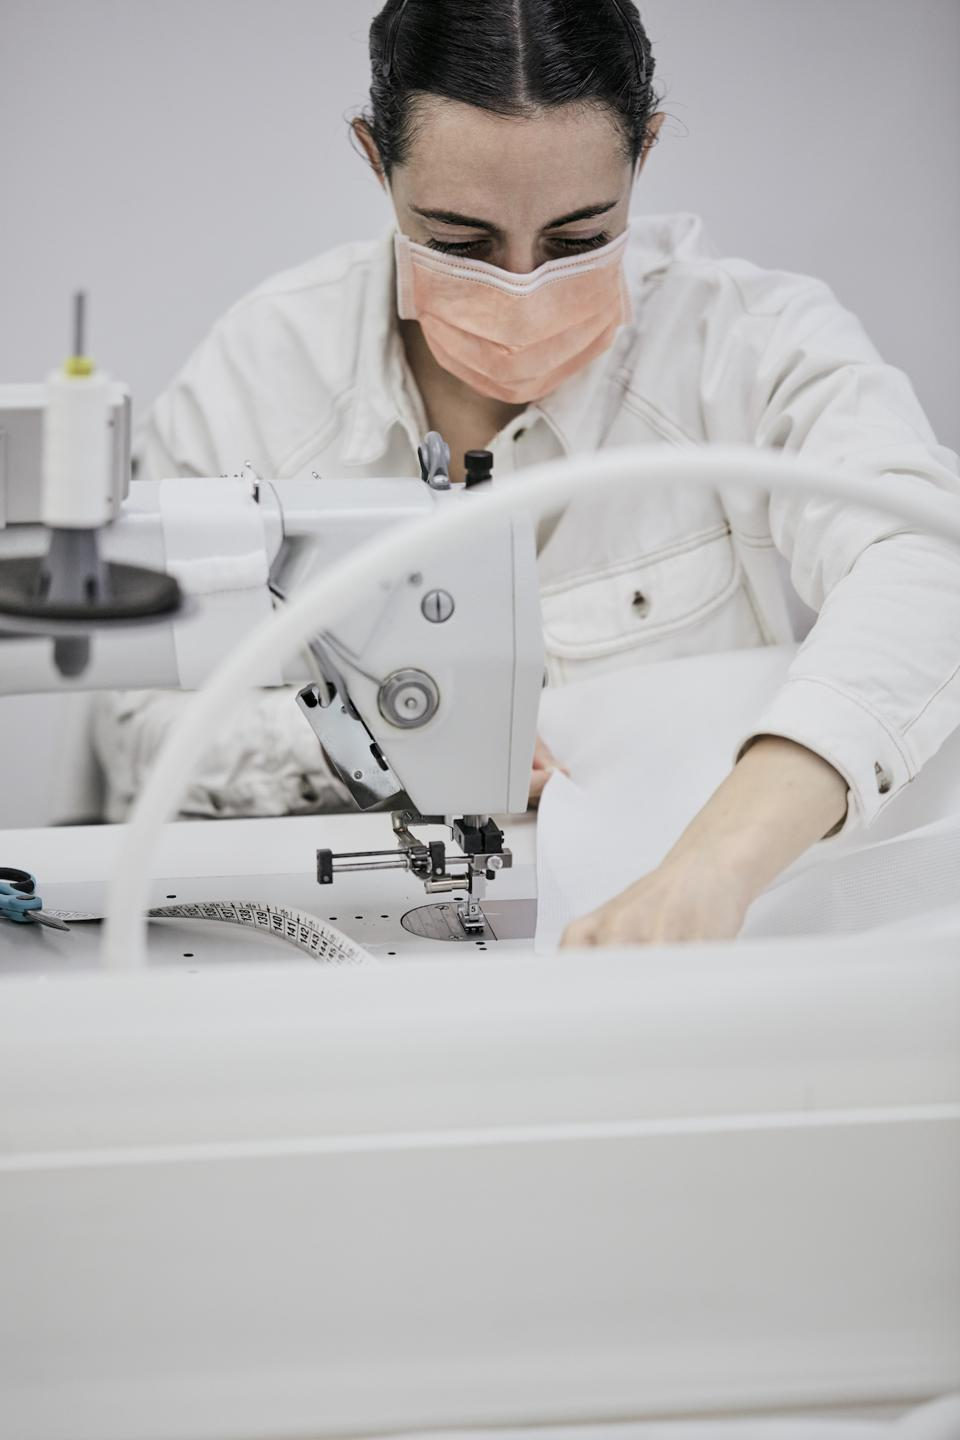 A hospital gown being made in the Louis Vuitton atelier